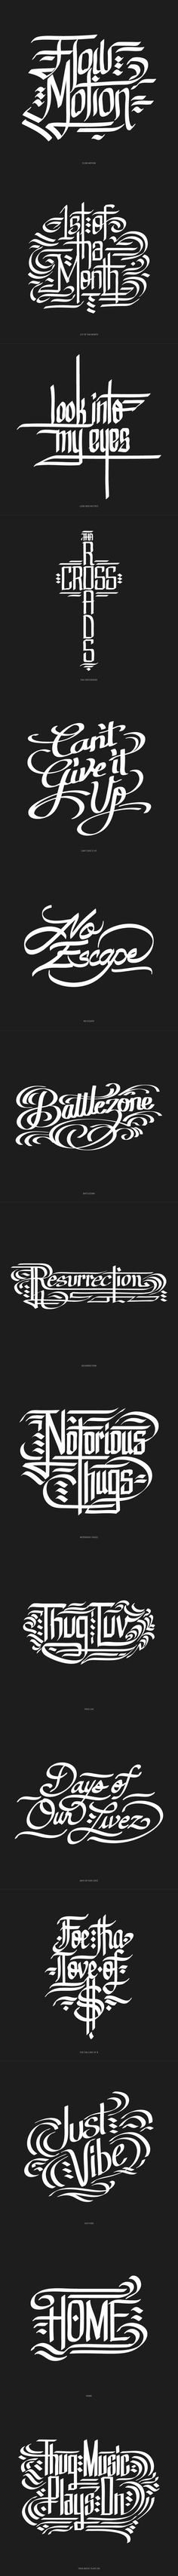 #font #typography #lettering Mouse Calligraphy: Bone Series on Typography Served